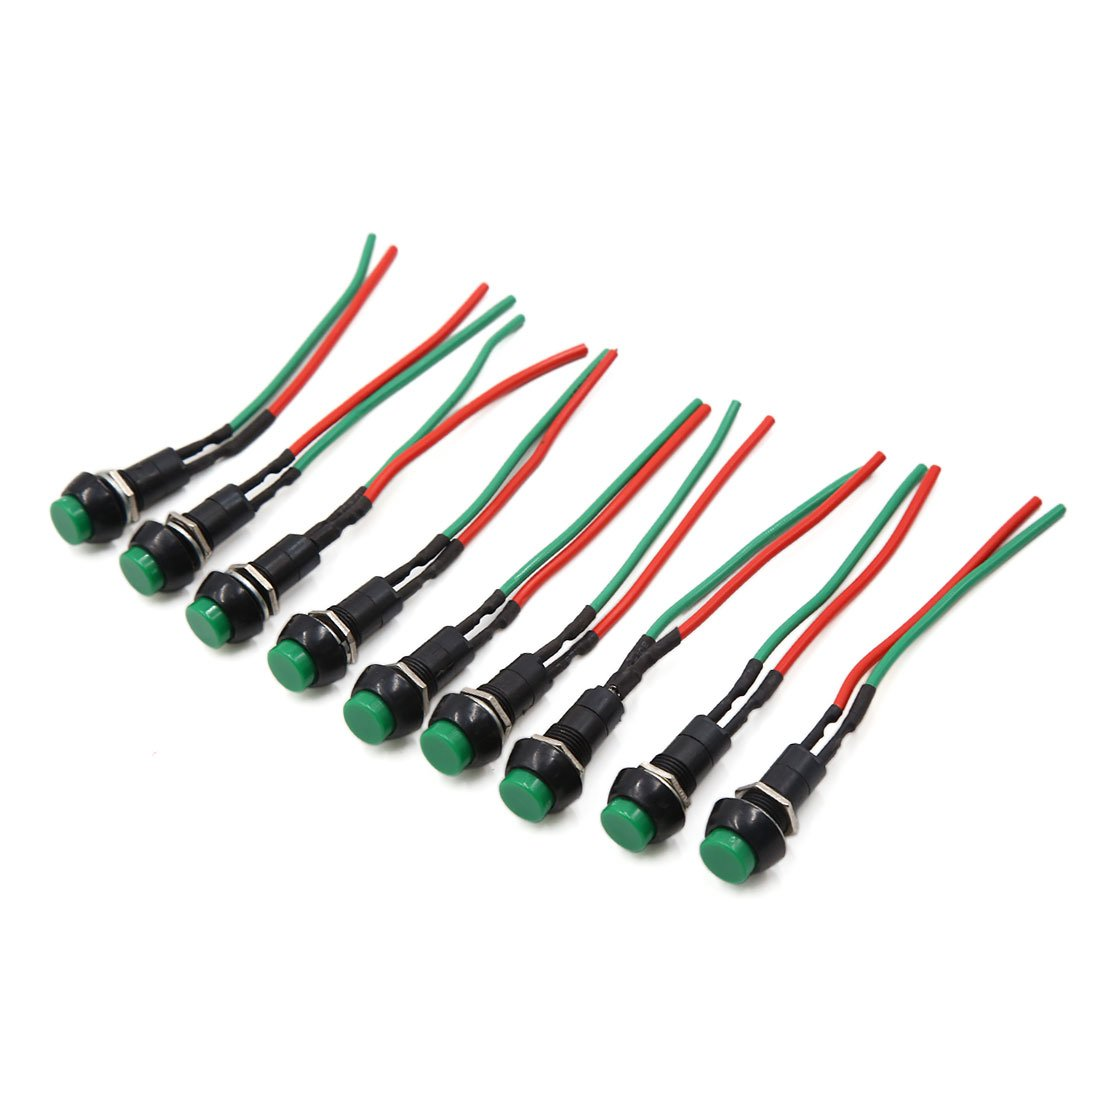 uxcell 10 Pcs DC 12-24V Round Shaped Wired Horn Momentary Push Button Switch for Car Vehicle